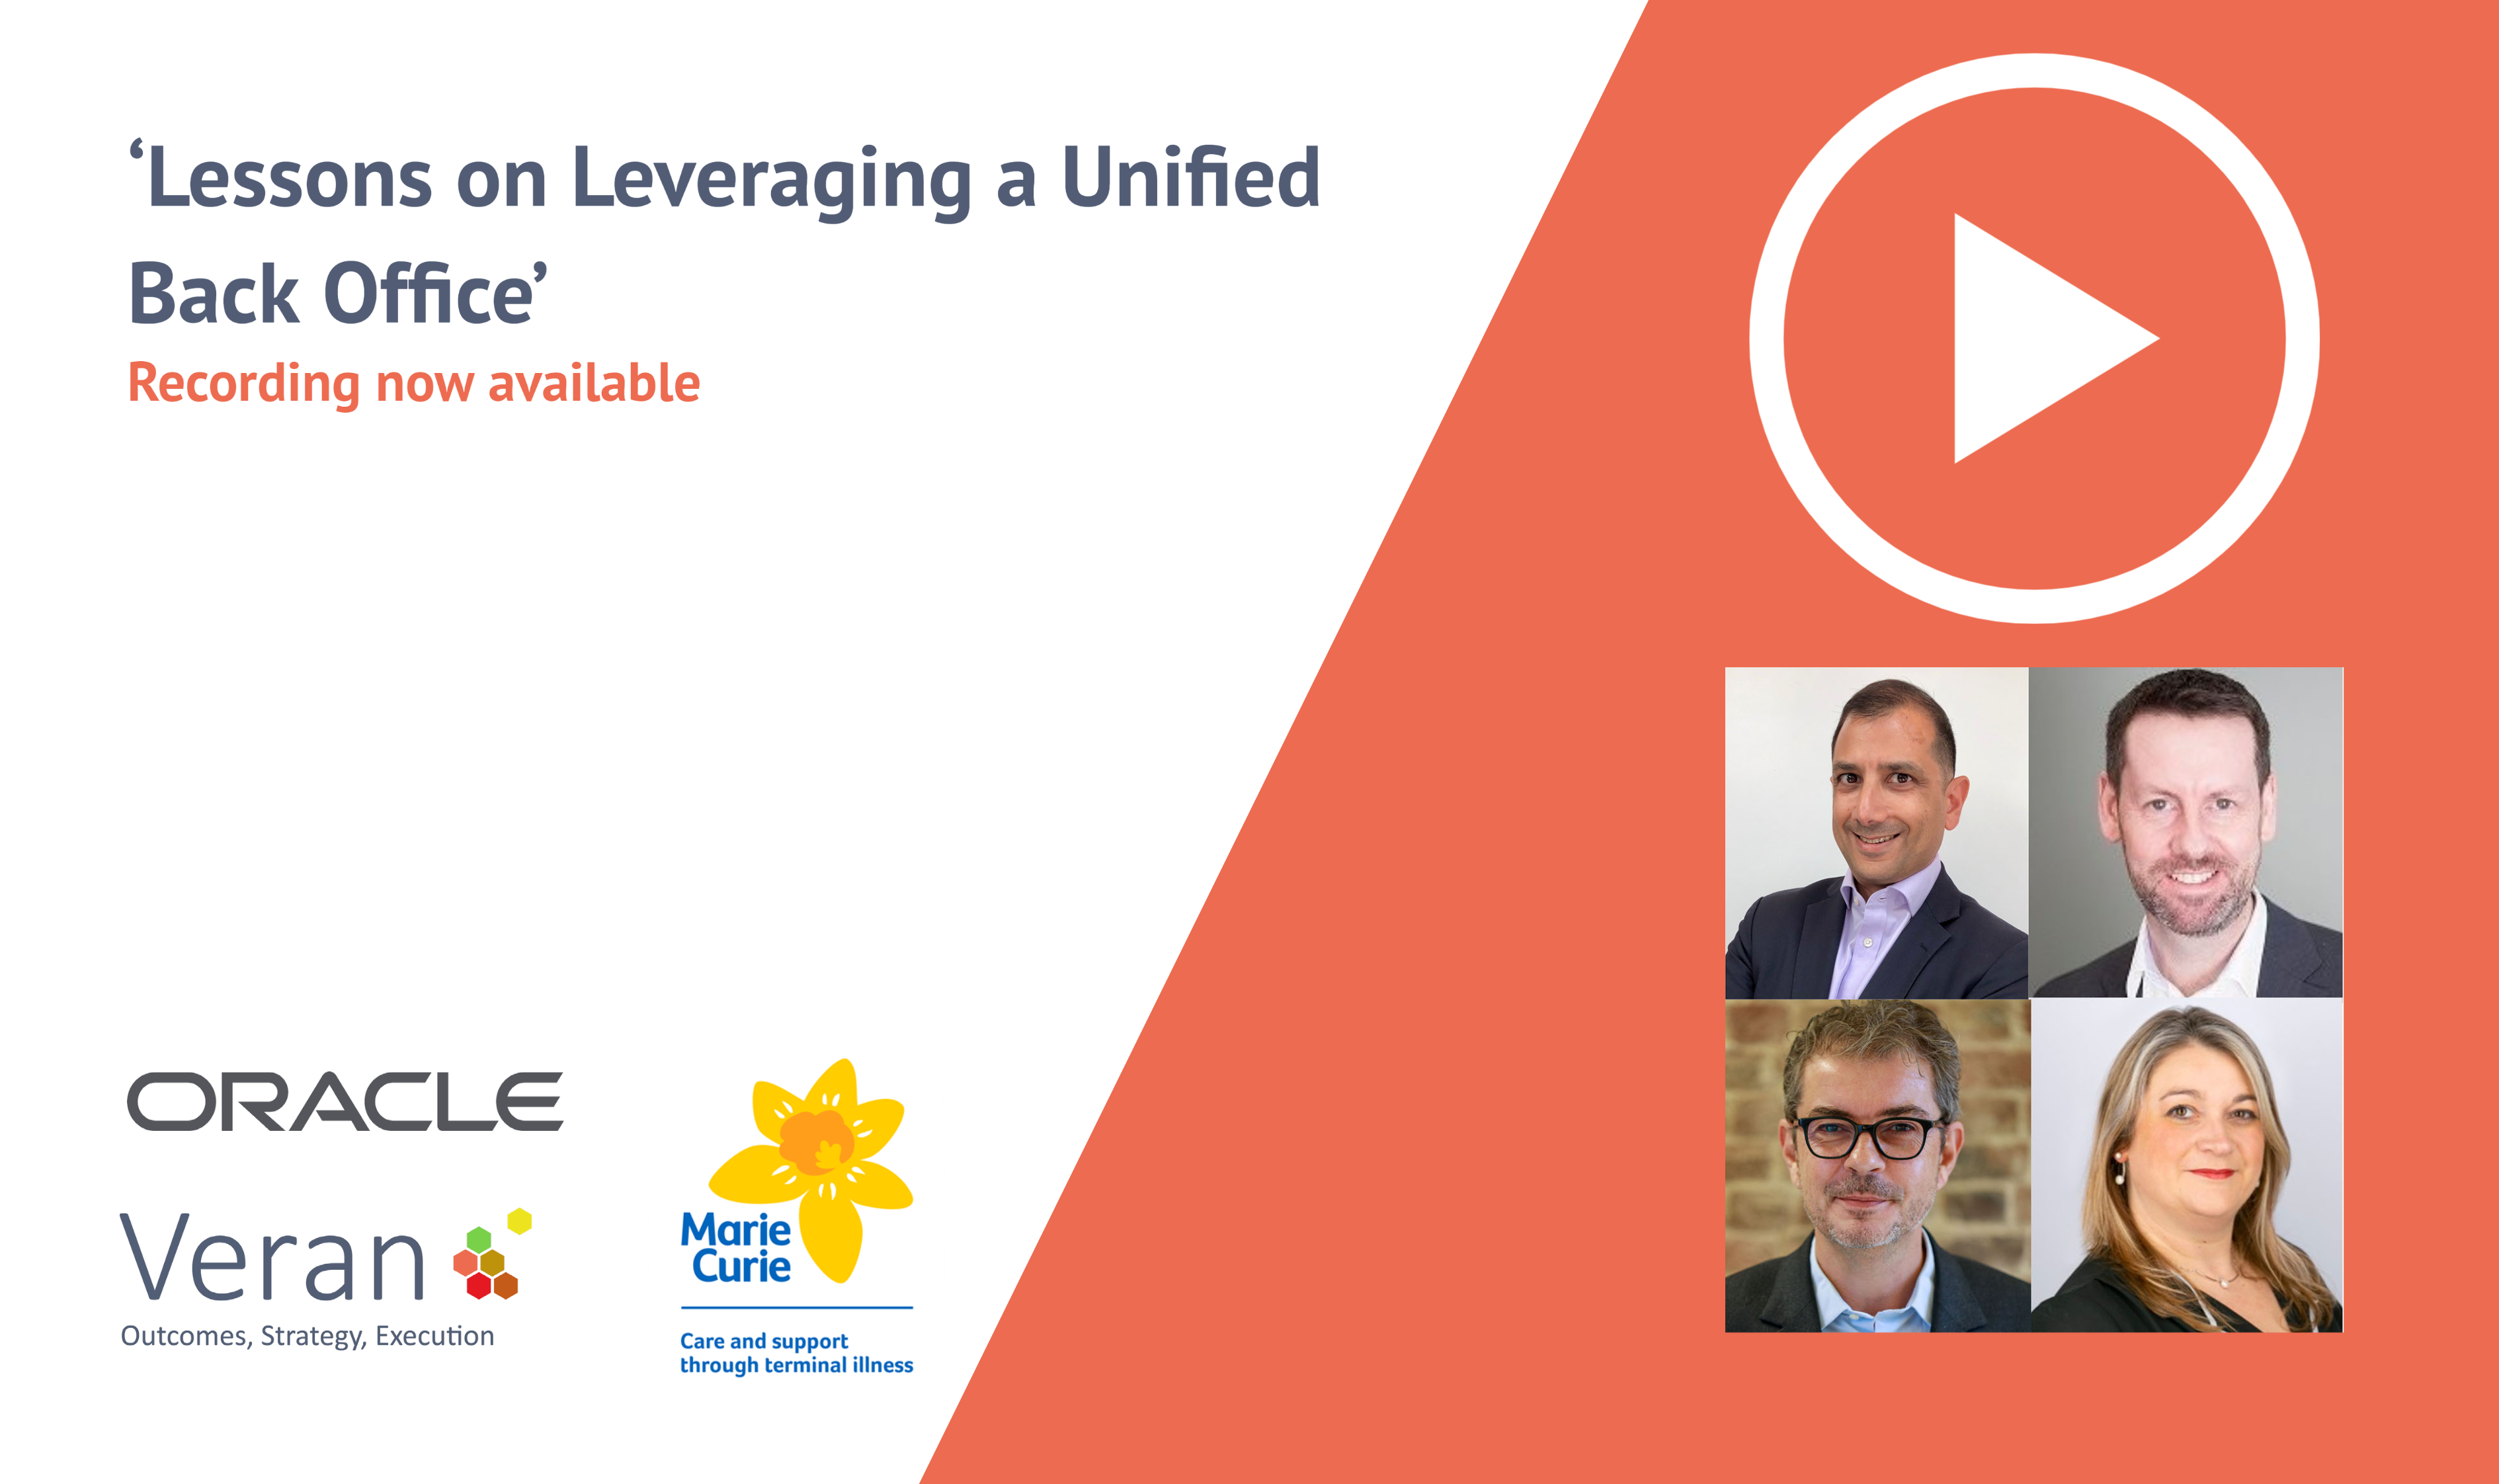 'Lessons on Leveraging a Unified Back Office'